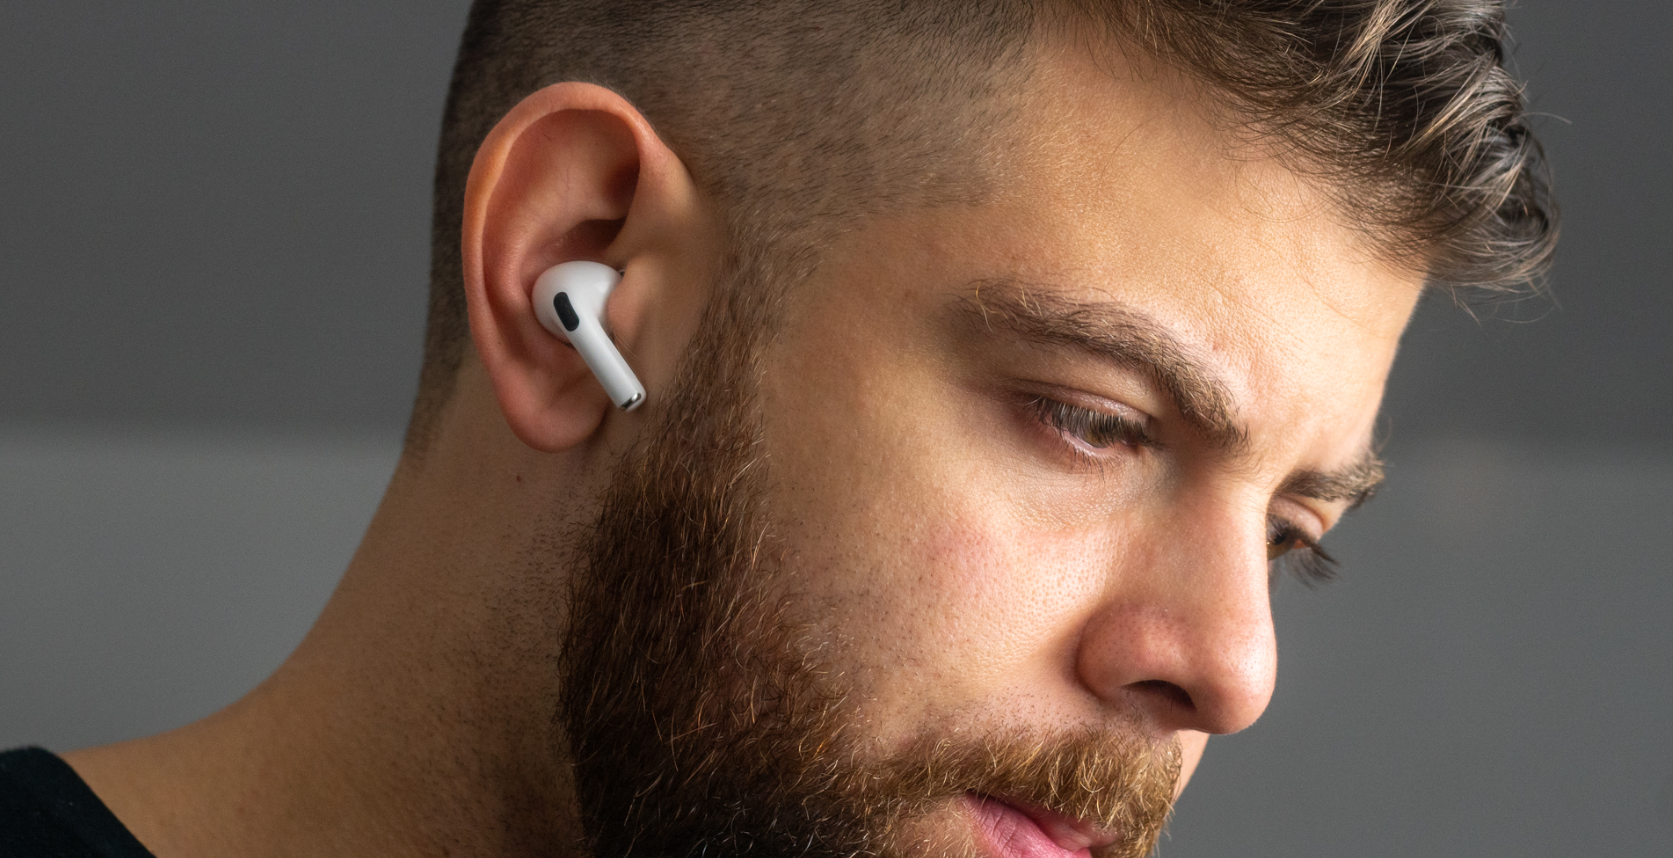 oneplus wireless earbuds